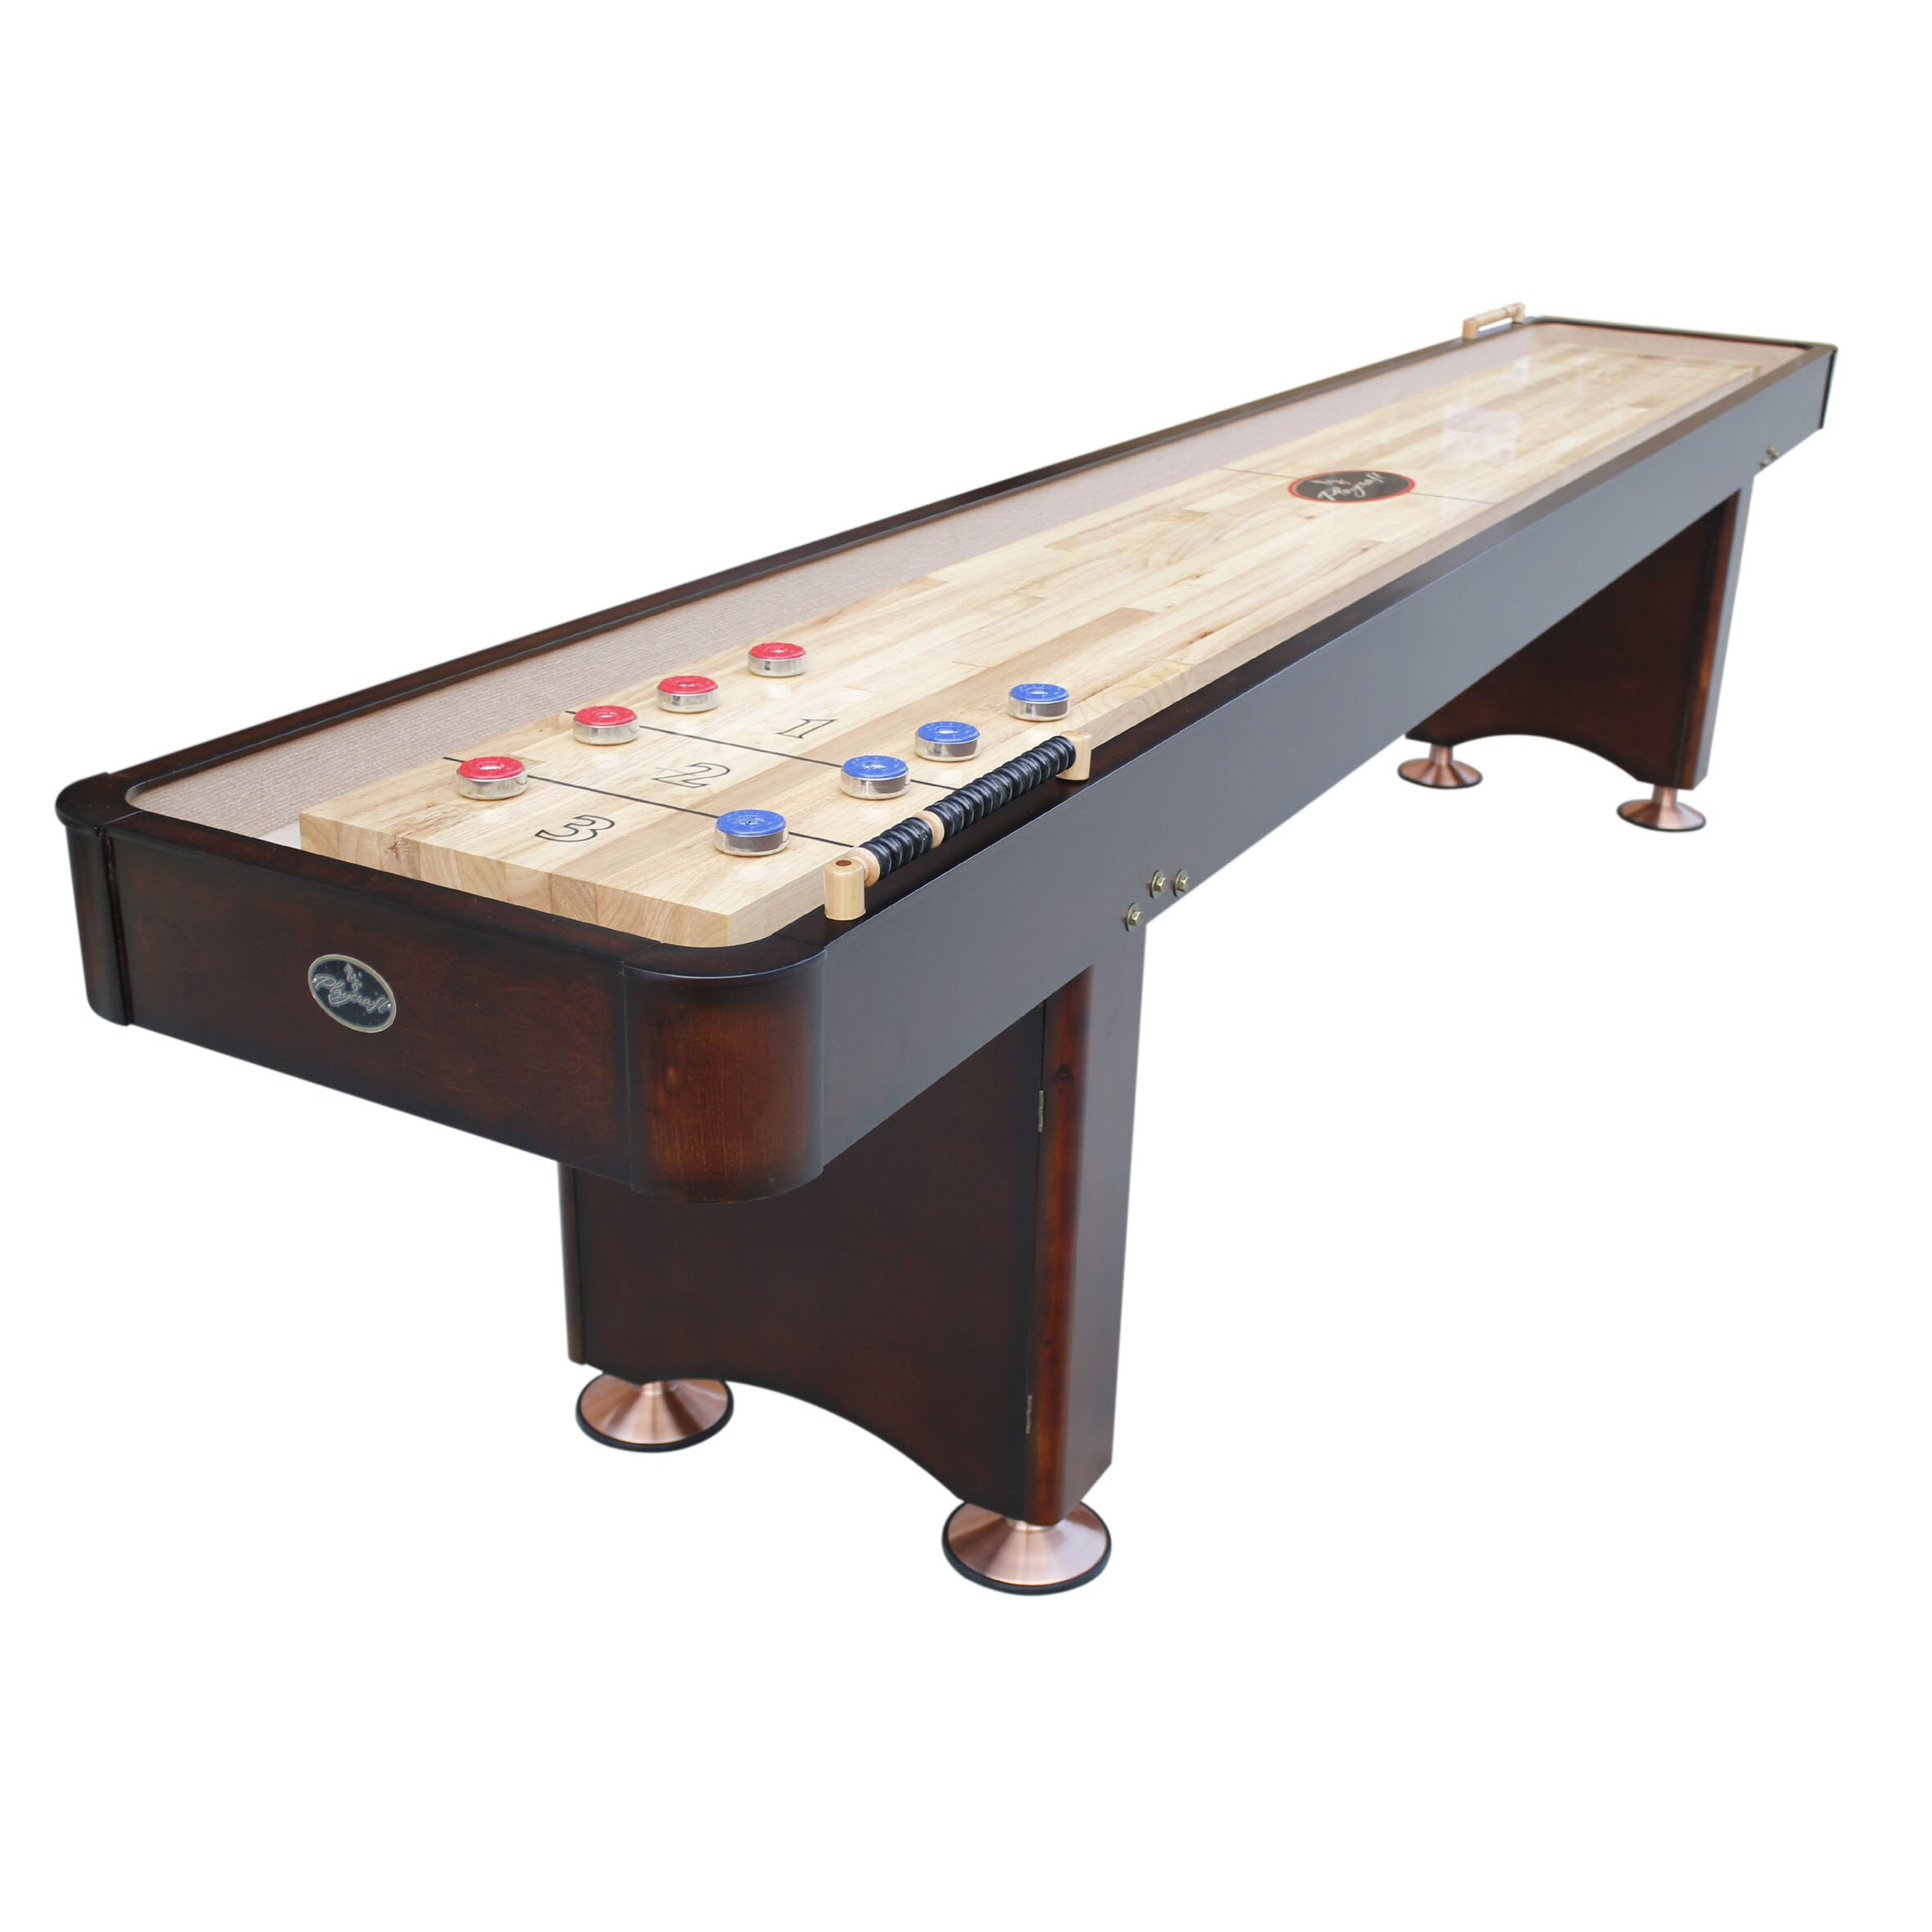 Boardroom Furniture For Sale: Playcraft Georgetown Shuffleboard In Espresso & Reviews